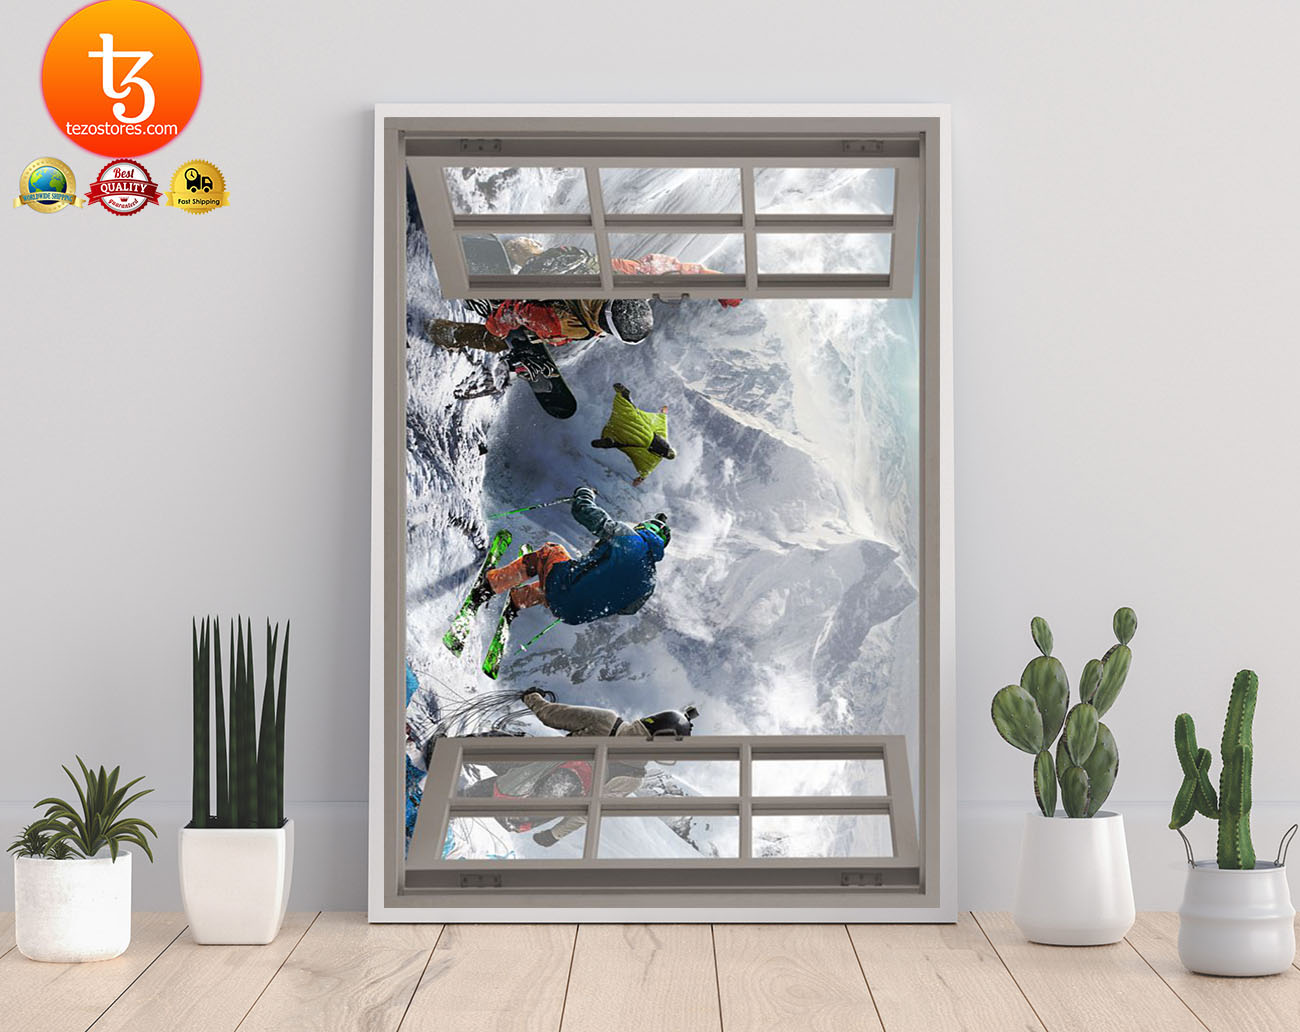 Winter sports window view poster 21